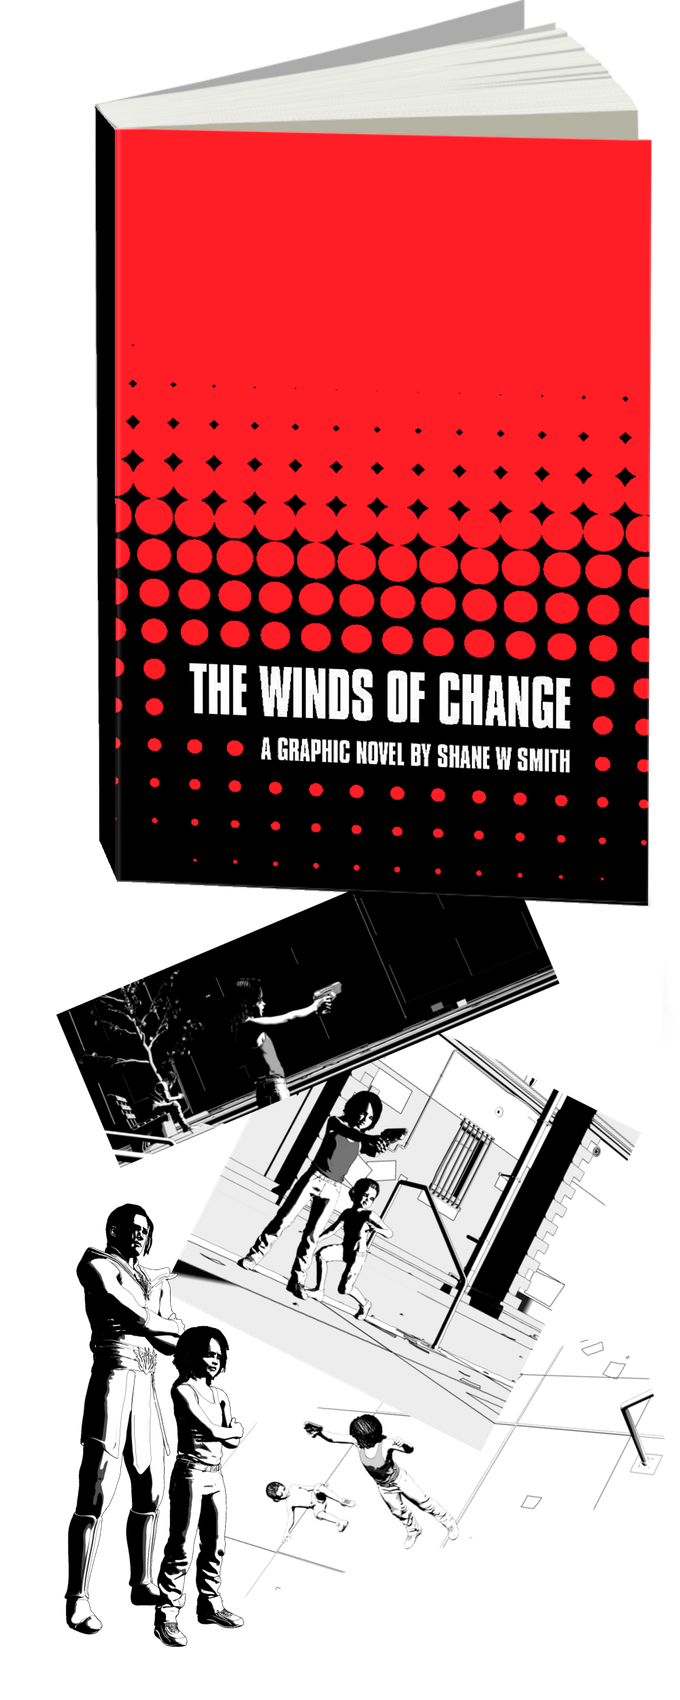 This exclusive preview of The Winds of Change will only be available as part of this Kickstarter campaign!